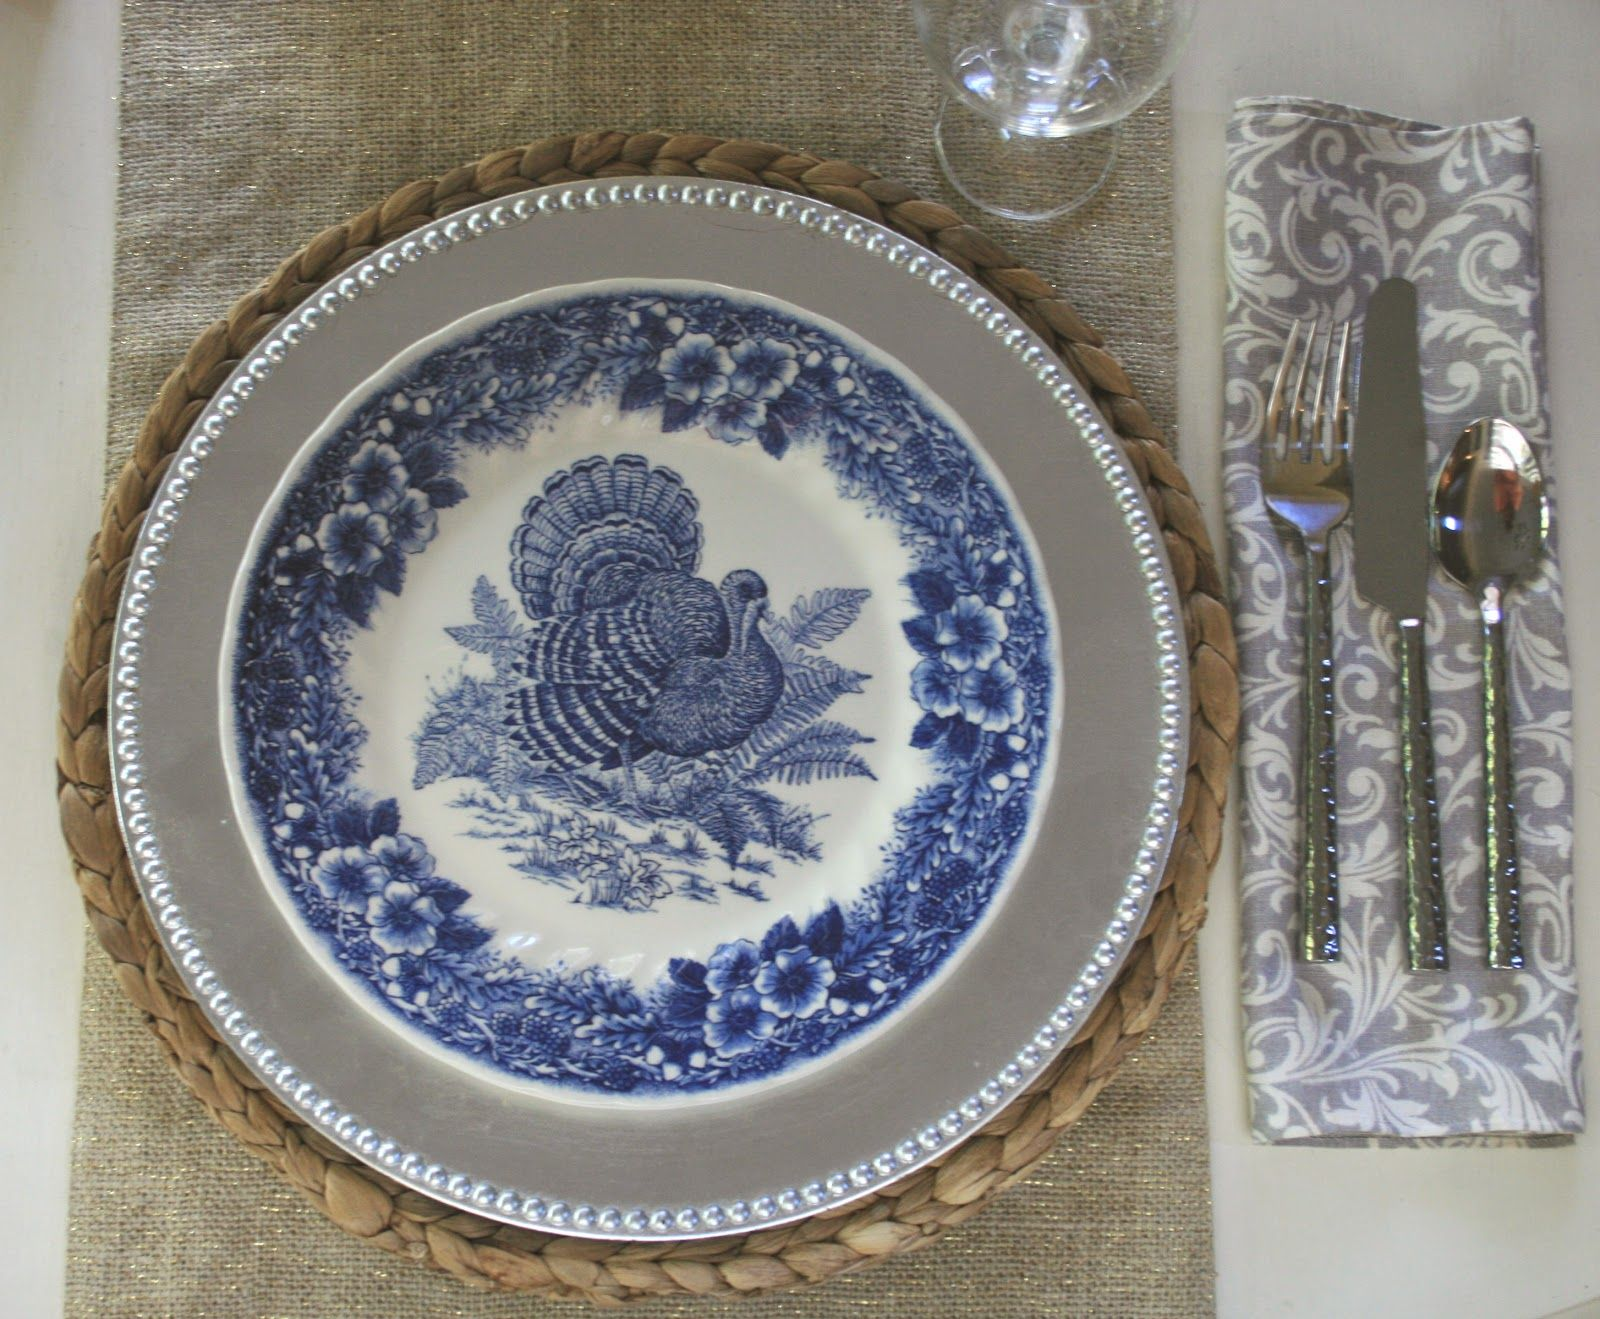 blue turkey plates with silver accents for Thanksgiving & blue turkey plates with silver accents for Thanksgiving | "|1600|1319|?|876e2f517a605ad2d8b9abc137547a89|False|UNLIKELY|0.32456544041633606